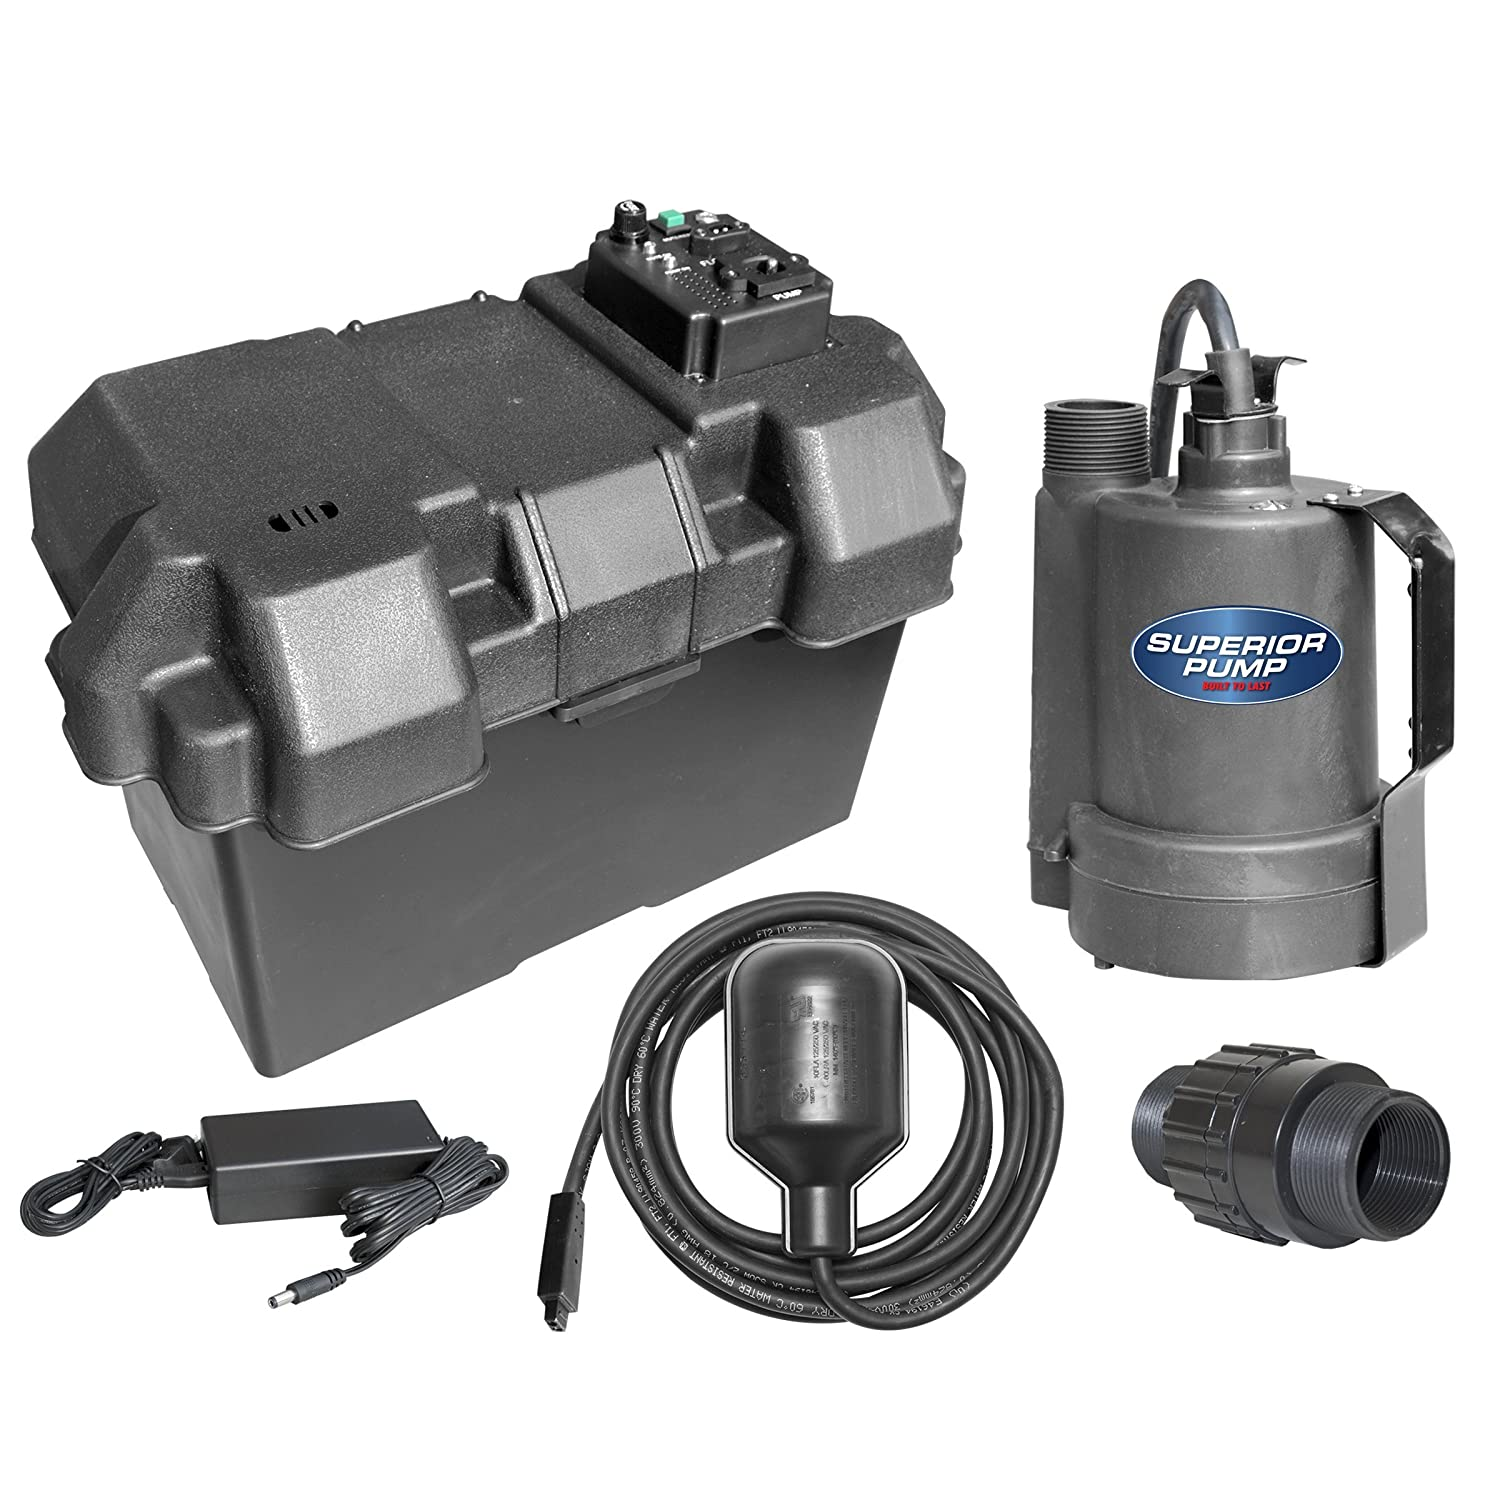 Best sump pump backup system - Superior Pump 92900 Powered Battery Back Up Sump Pump With Tethered Switch 12v Dc Amazon Com